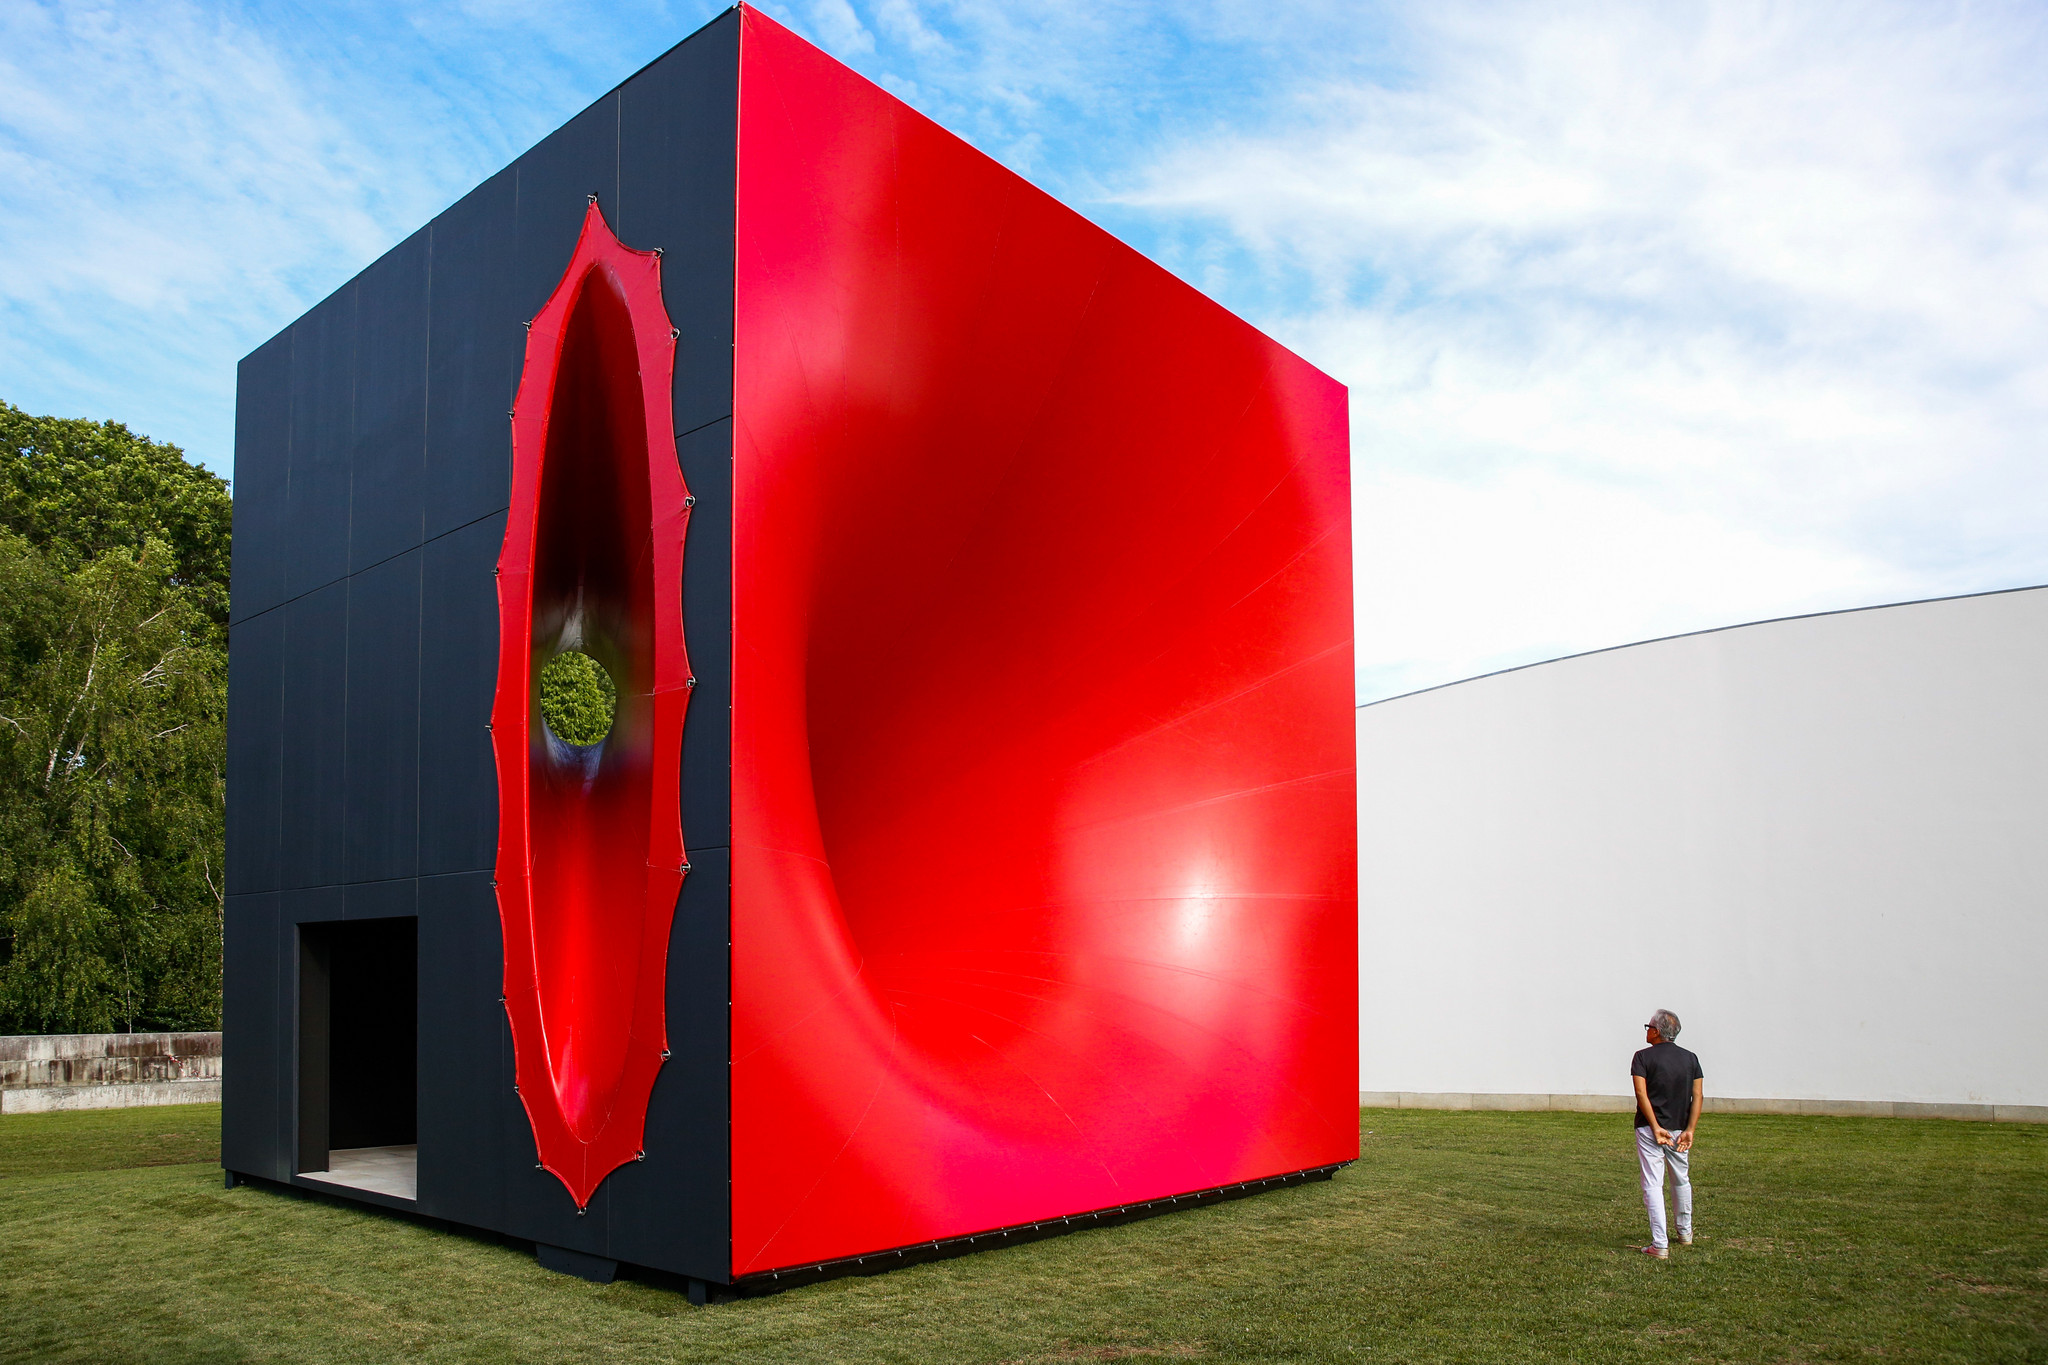 LM- Suzanne Cotter e obras Anish Kapoor 04-07-18-1-8.JPG